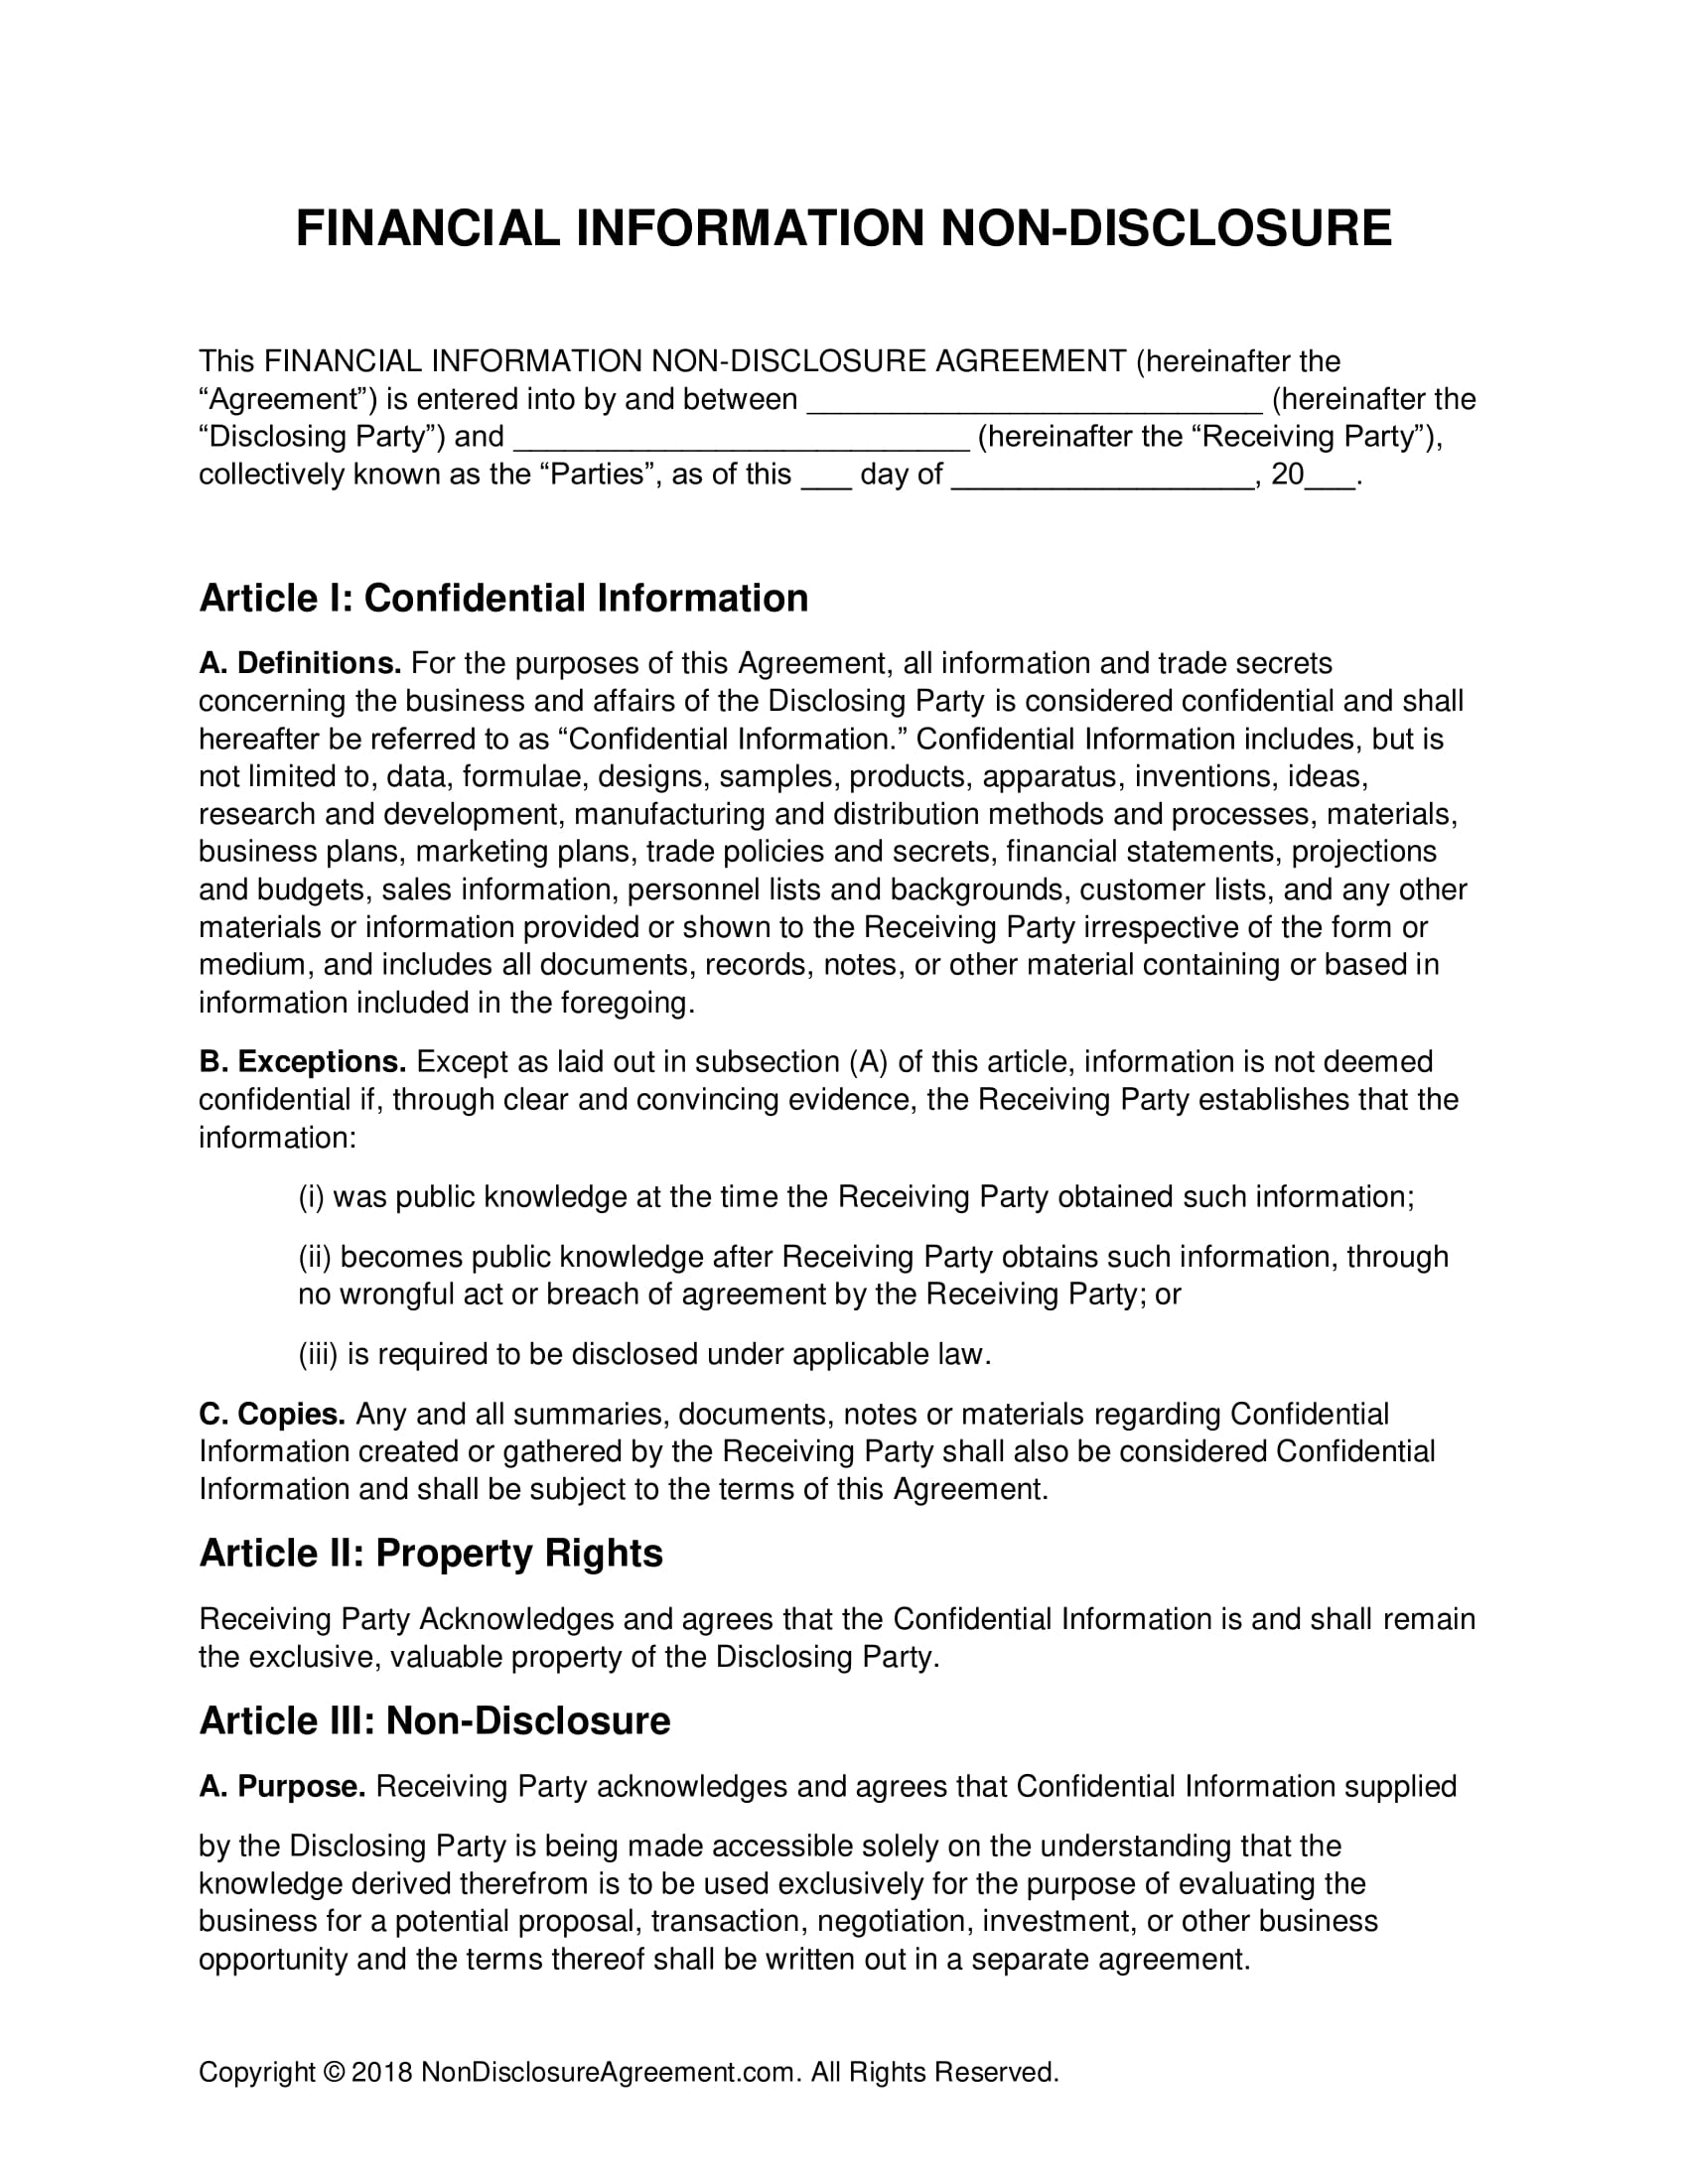 detailed financial confidentiality agreement example